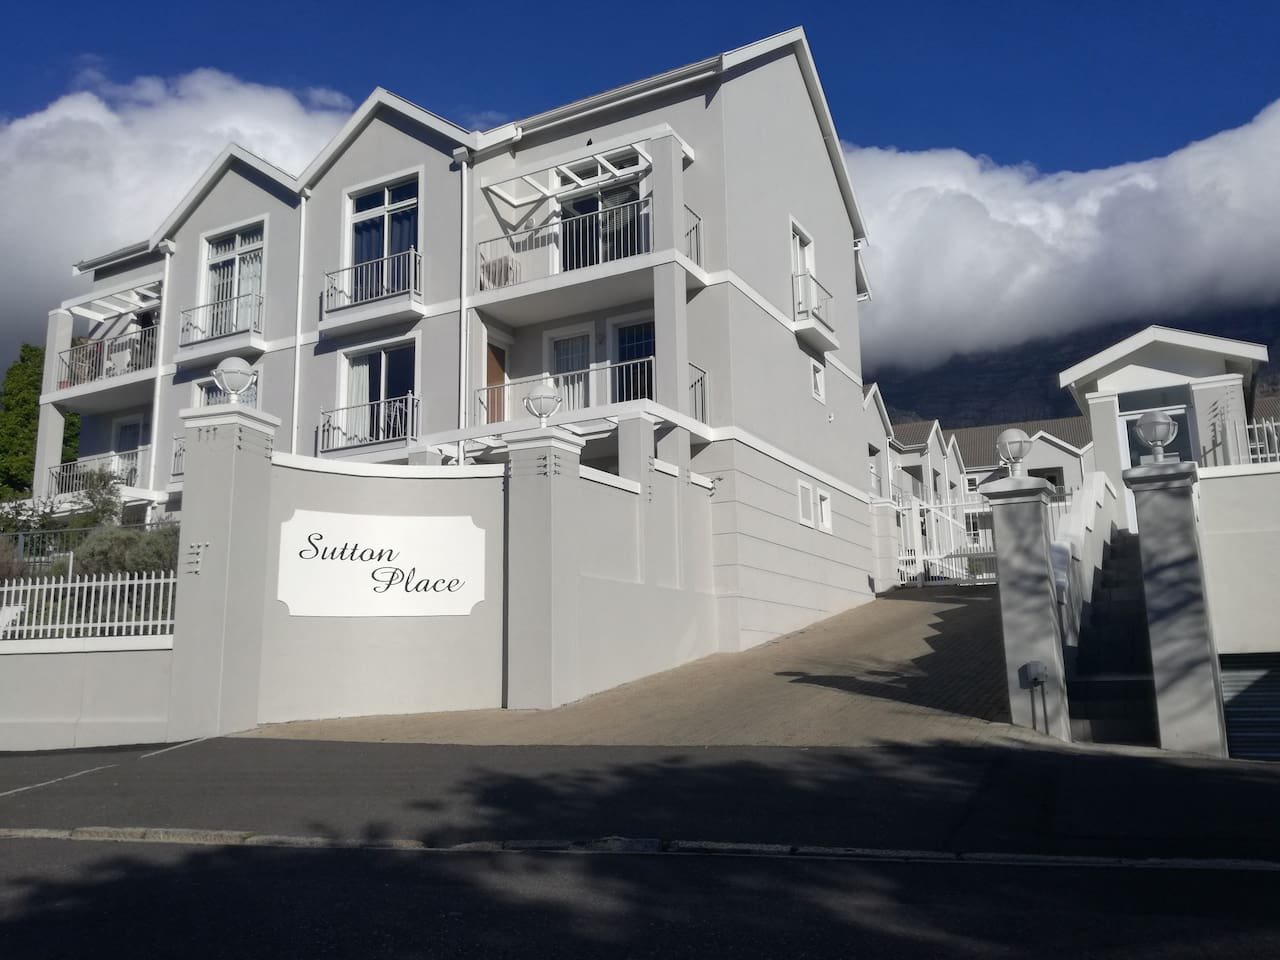 Sutton Place has Table Mountain as a backdrop. It's a secure residence with high walls, electric fencing and 24 hour security. There is also gated off-street parking.